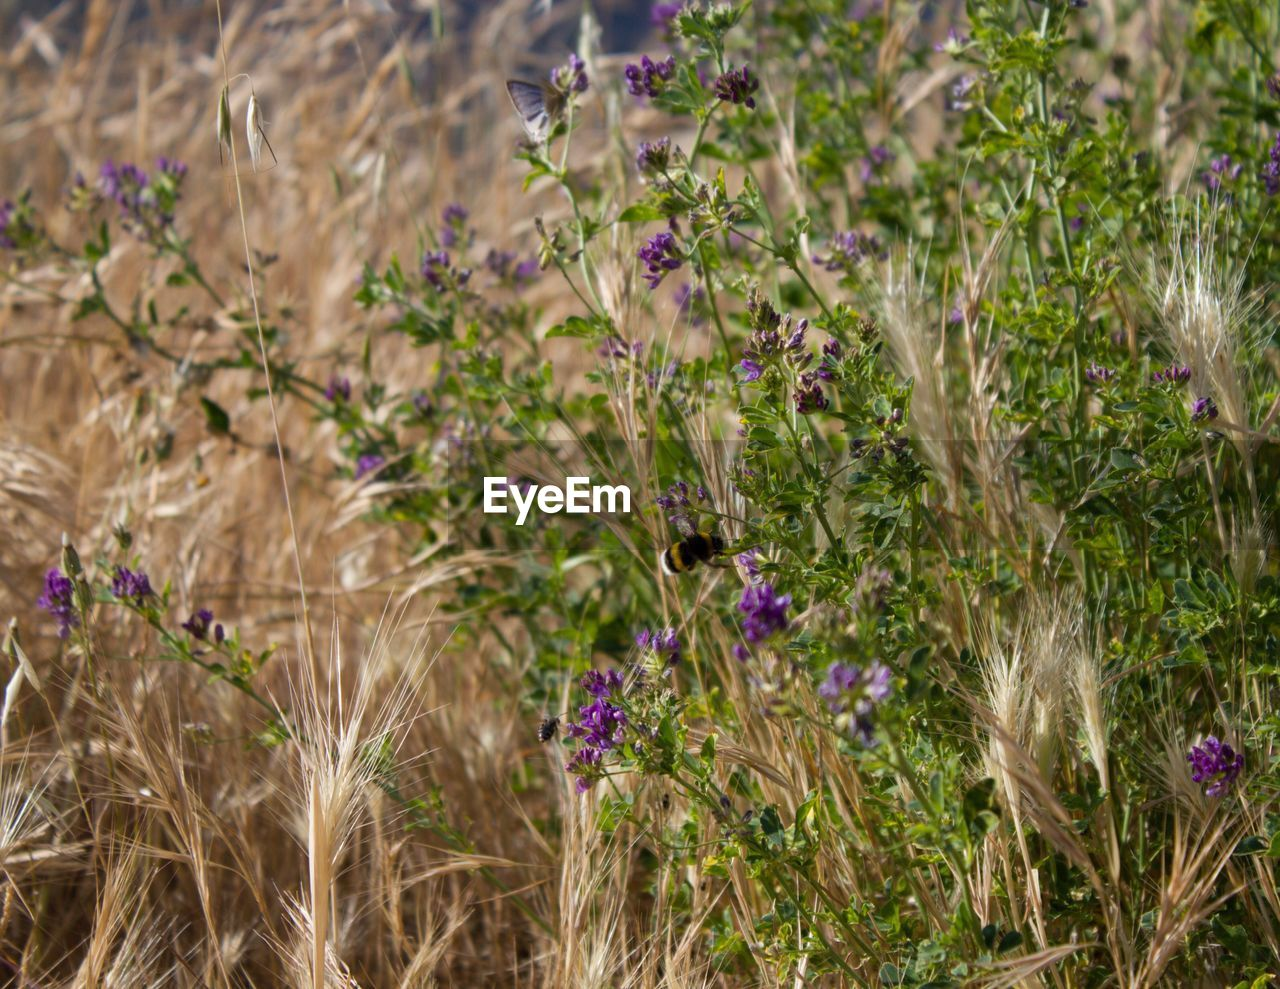 plant, growth, flowering plant, flower, nature, beauty in nature, freshness, day, field, fragility, close-up, no people, land, vulnerability, outdoors, selective focus, tranquility, focus on foreground, plant part, leaf, purple